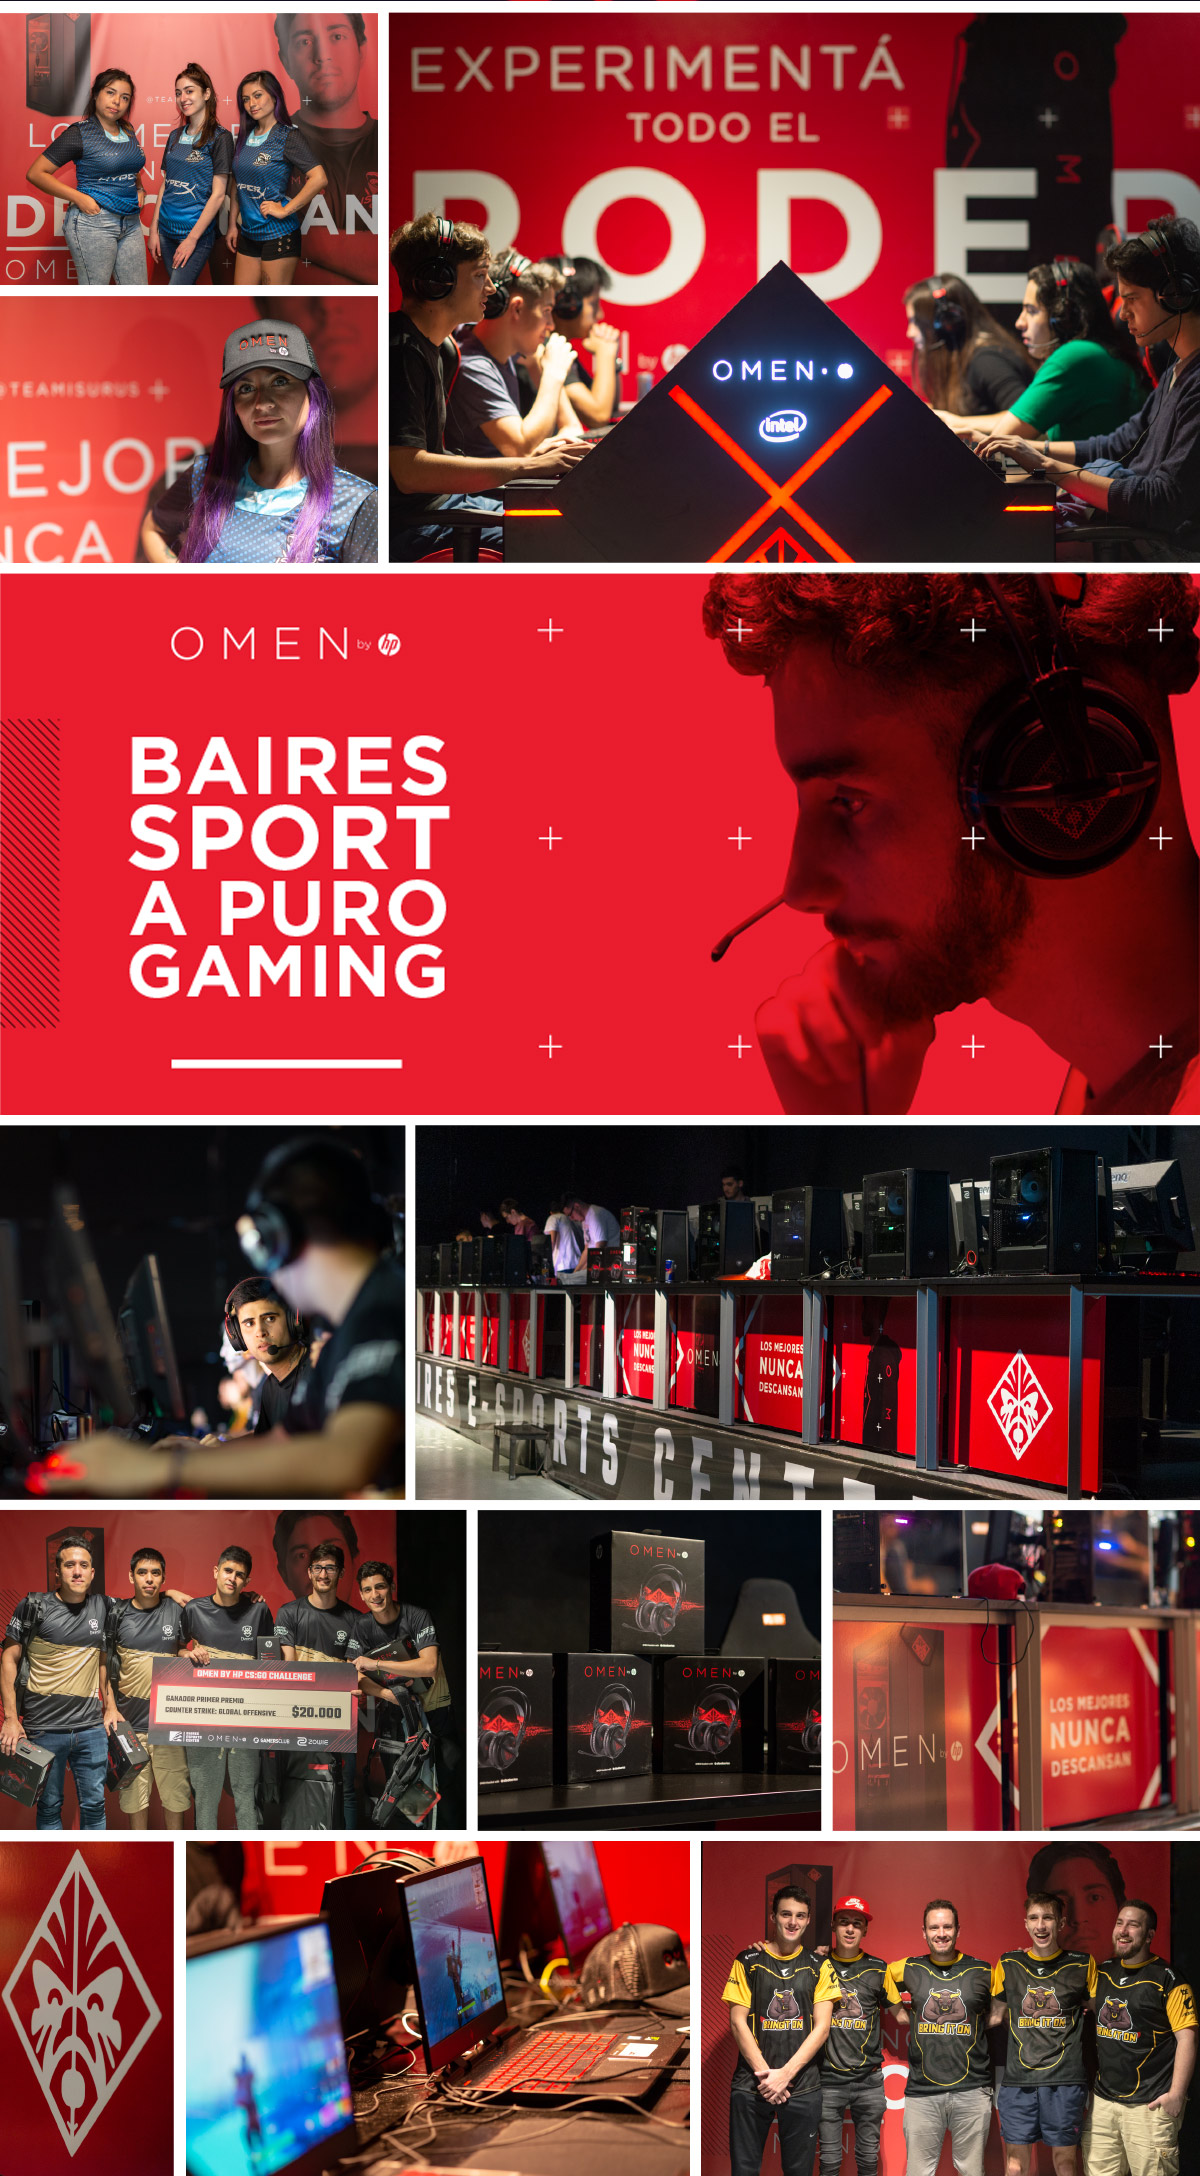 OMEN by HP at Baires e-Sports Center